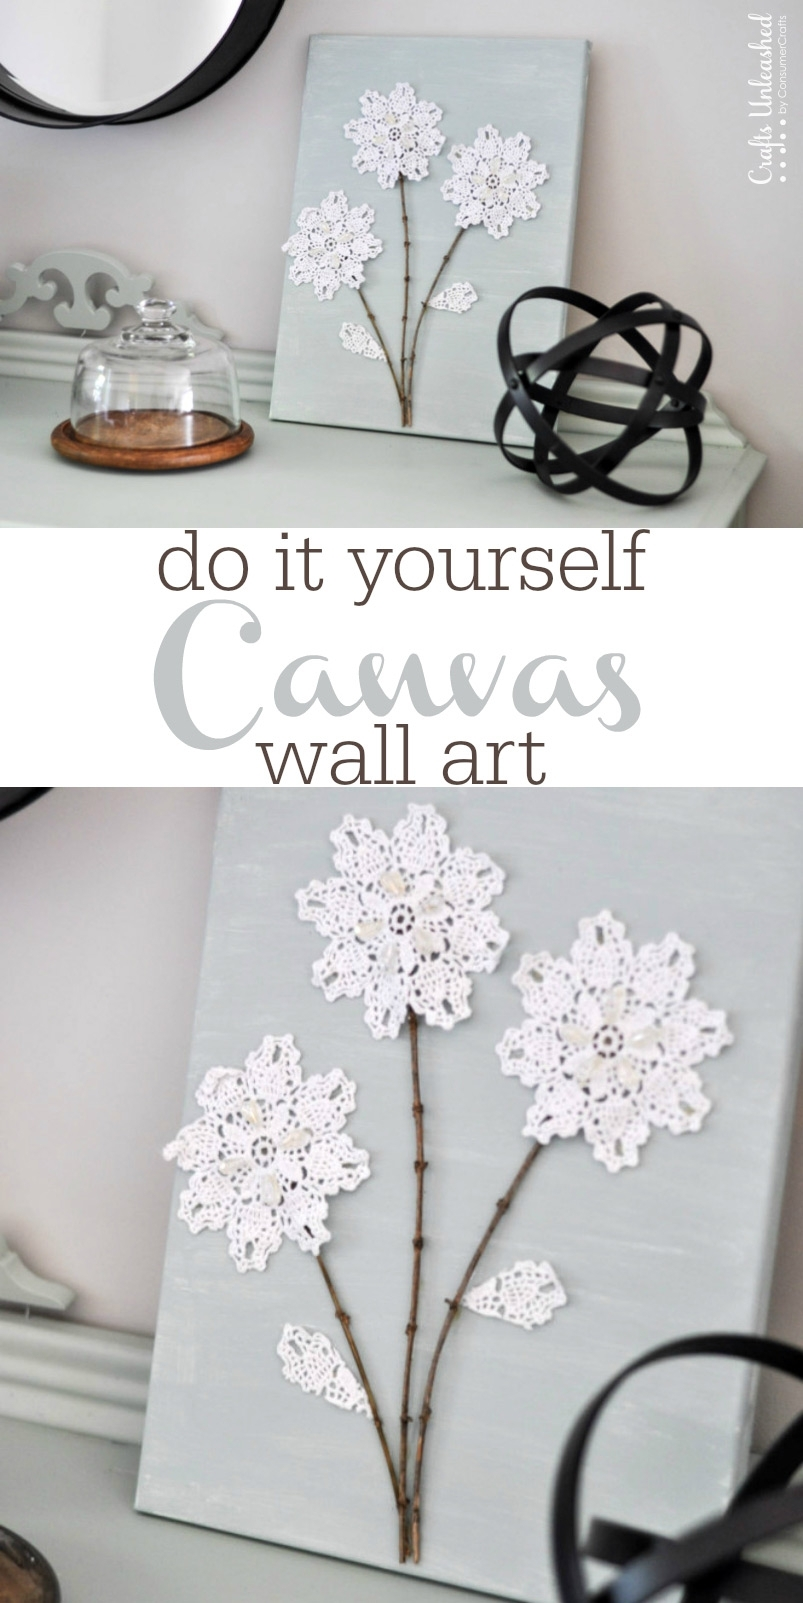 Diy Canvas Wall Art: Shabby Chic Flowers – Crafts Unleashed In Current Diy Canvas Wall Art (View 7 of 15)